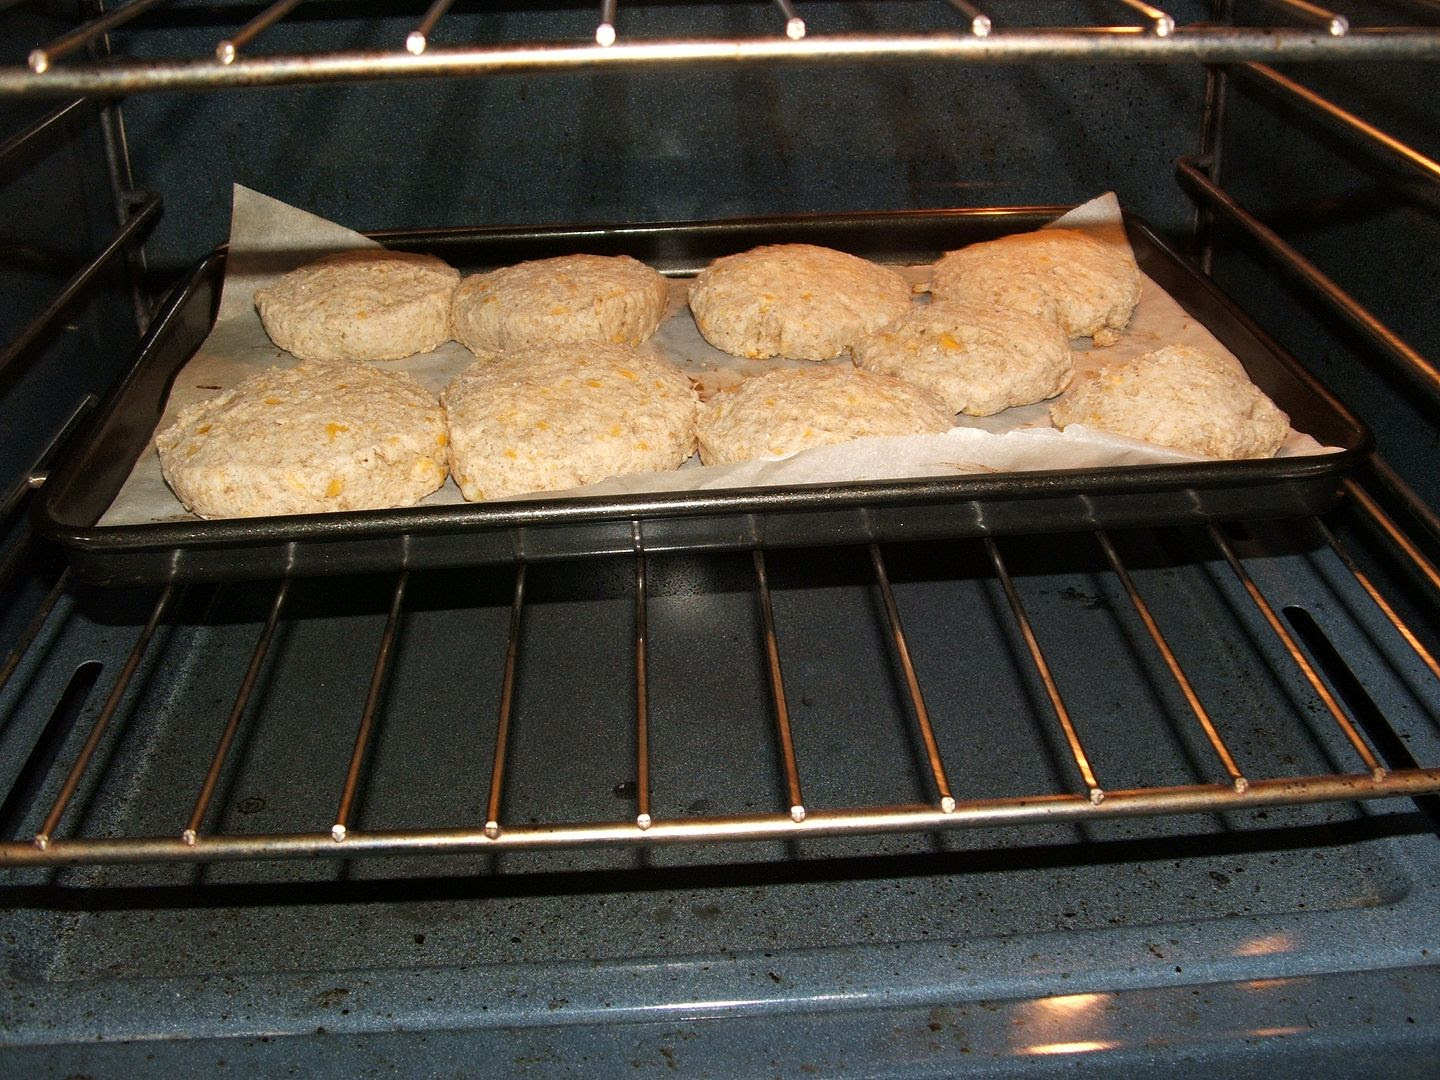 Whole Grain Cheese Biscuits by Angie Ouellette-Tower for godsgrowinggarden.com photo 005_zpsbdaff912.jpg